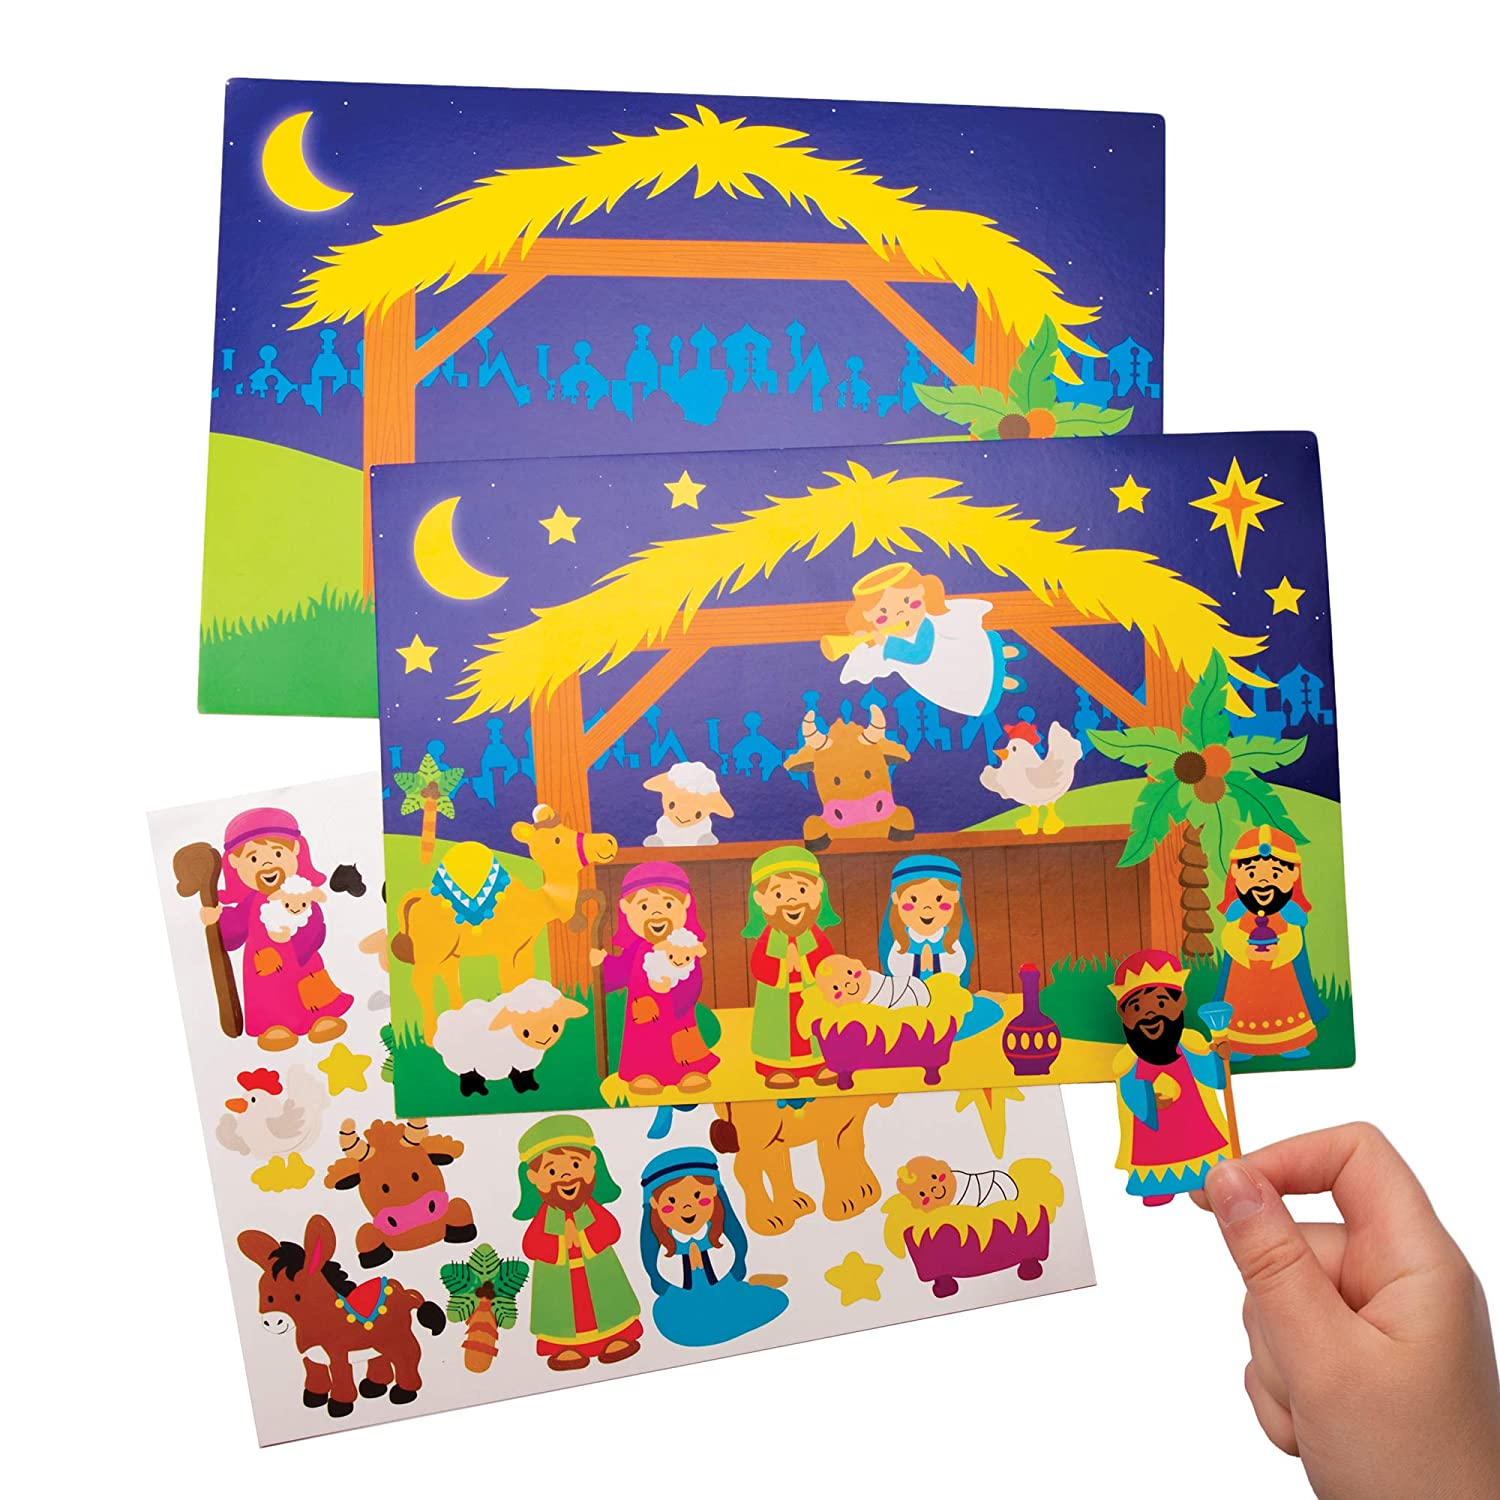 Baker Arlington Mall Ross AT142 Discount is also underway Nativity Sticker Scene 4 Pack - Kits of Perfec